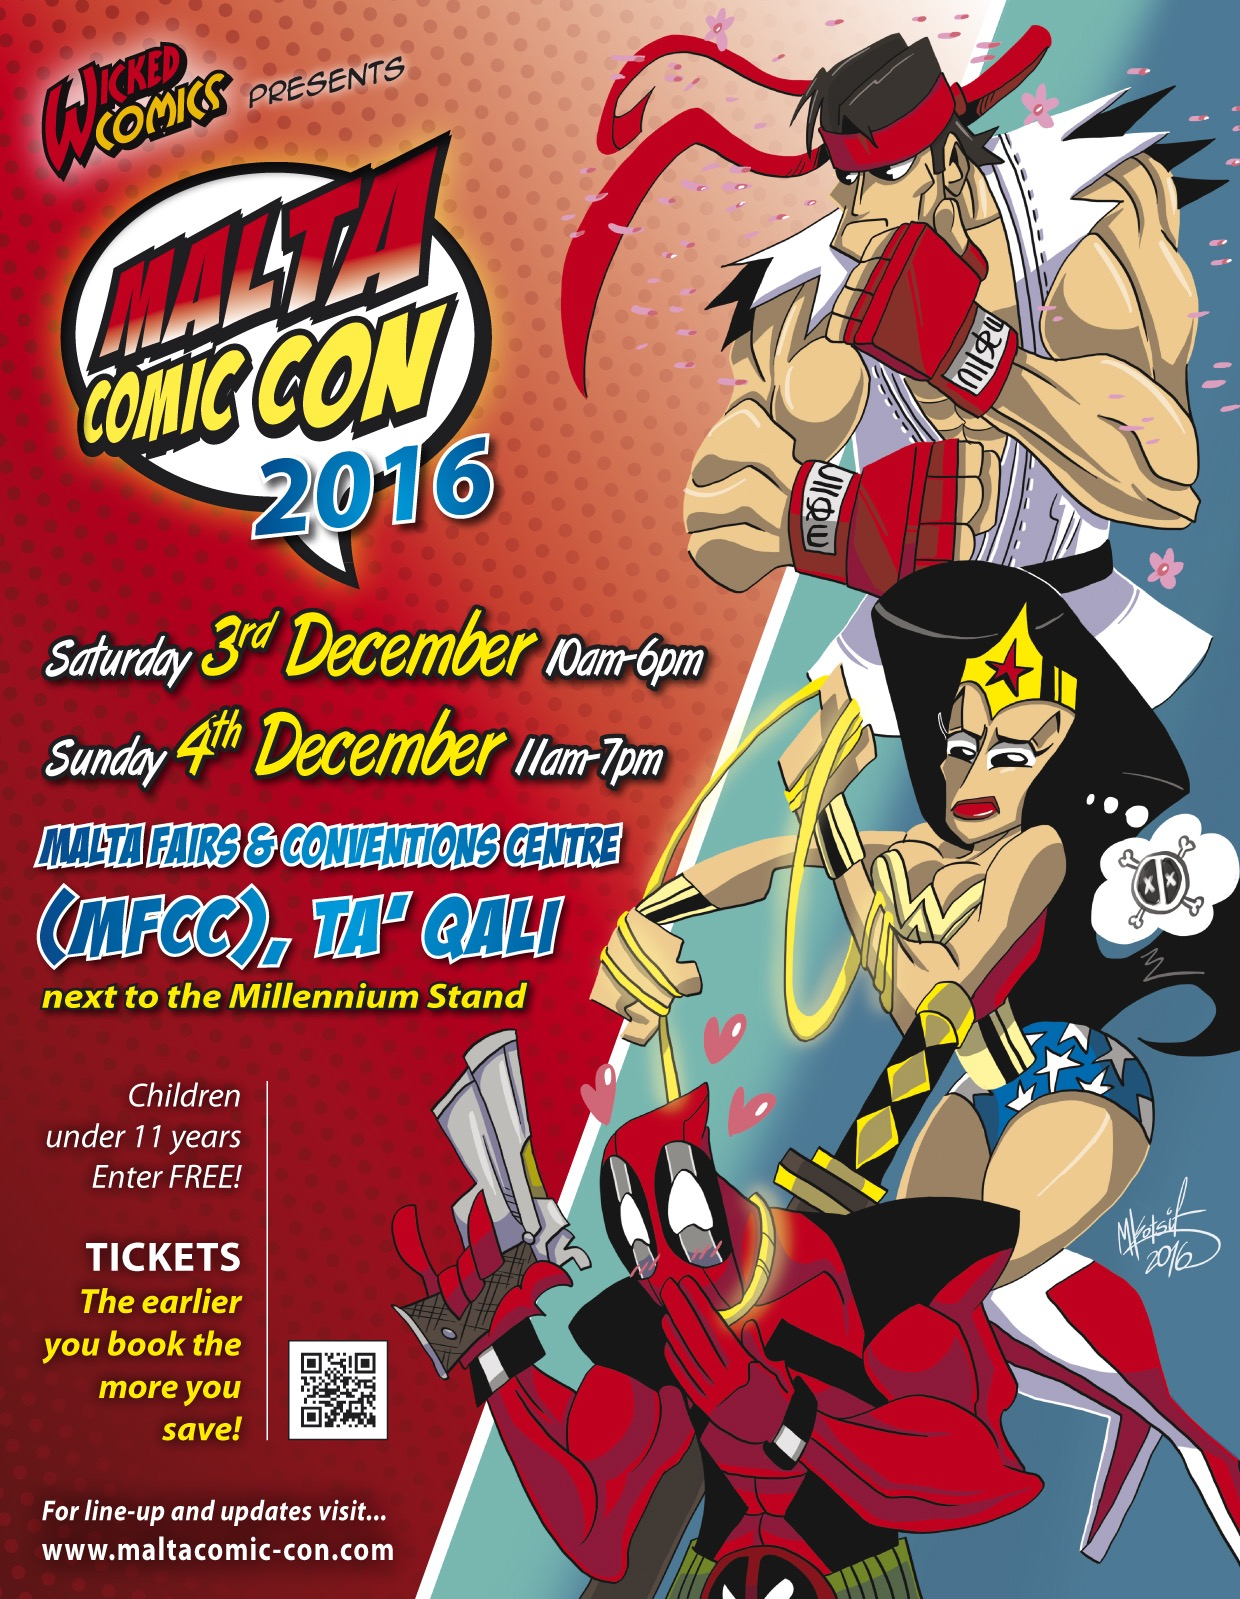 2000AD's Tom Foster among first guests announced for Malta Comic Con 2016